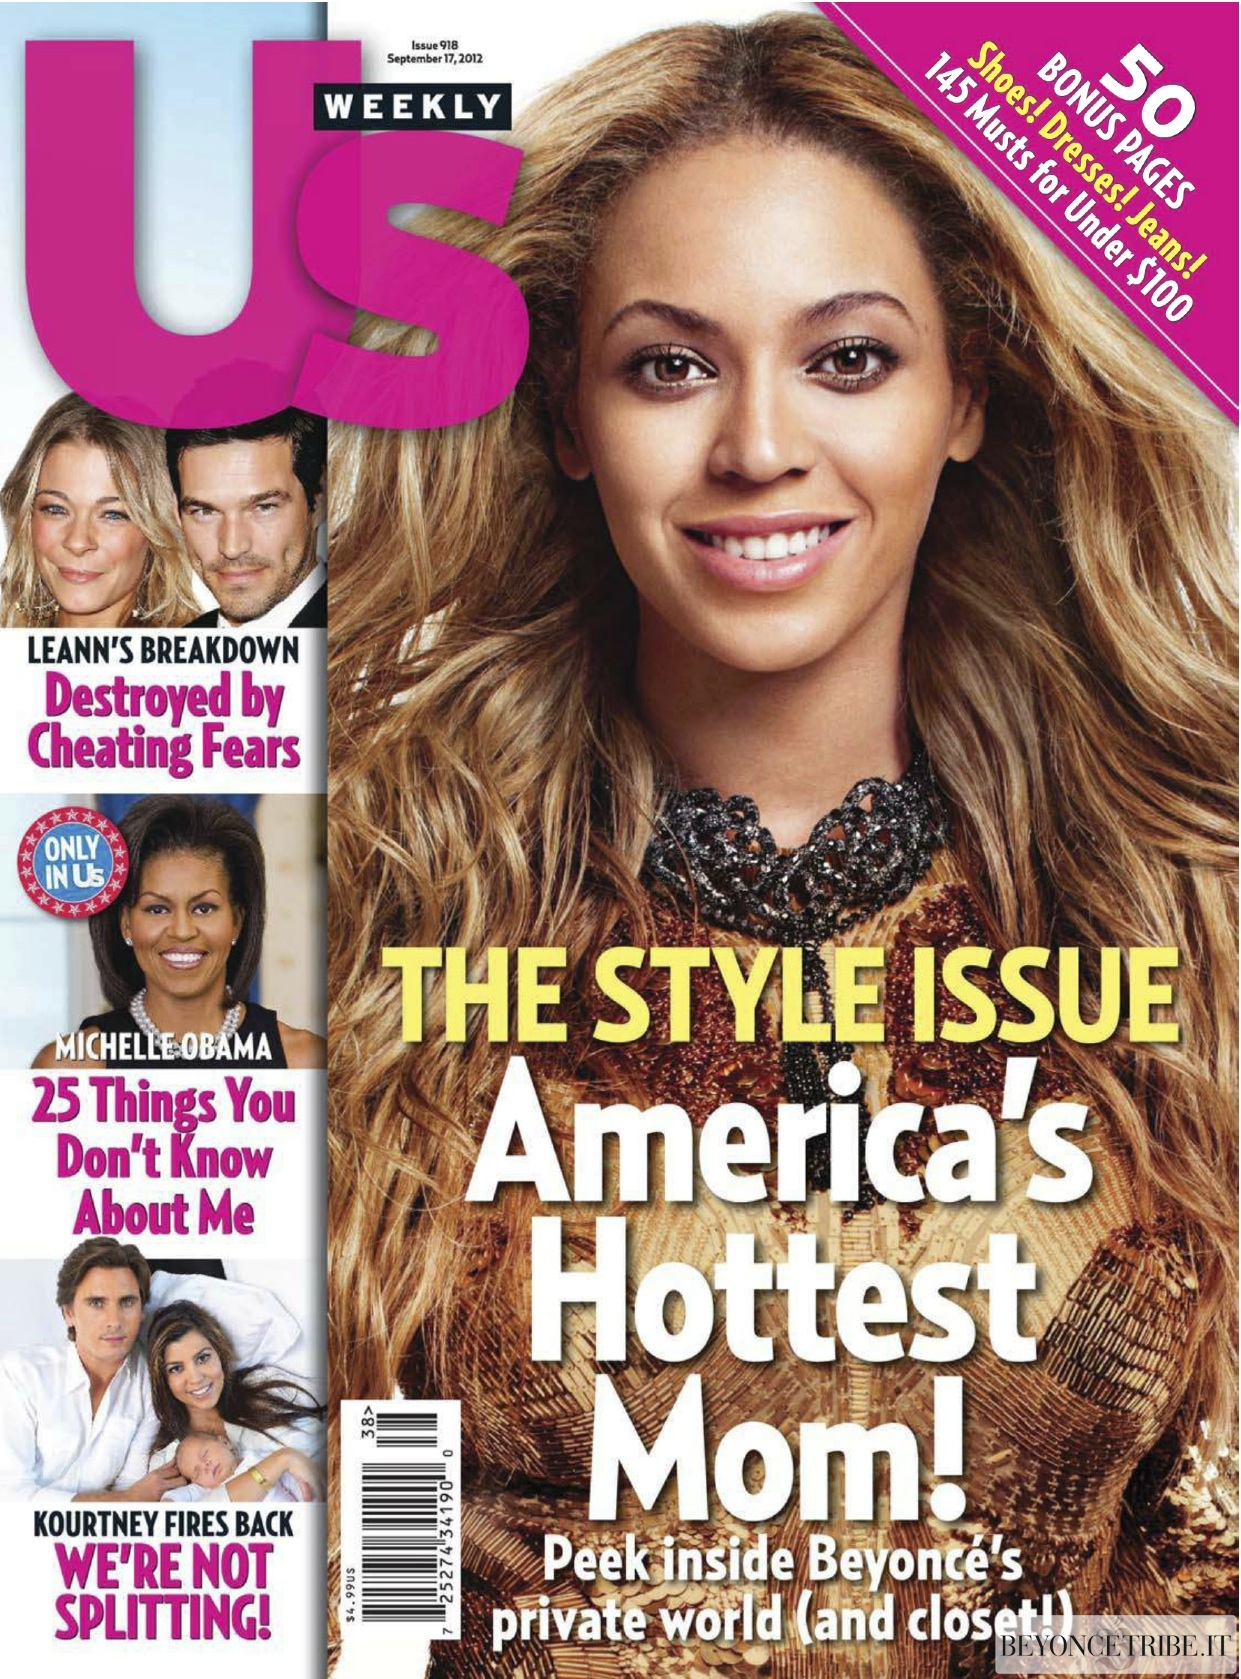 Beyonc on the cover of Us Weekly magazine 17 Sept 2012